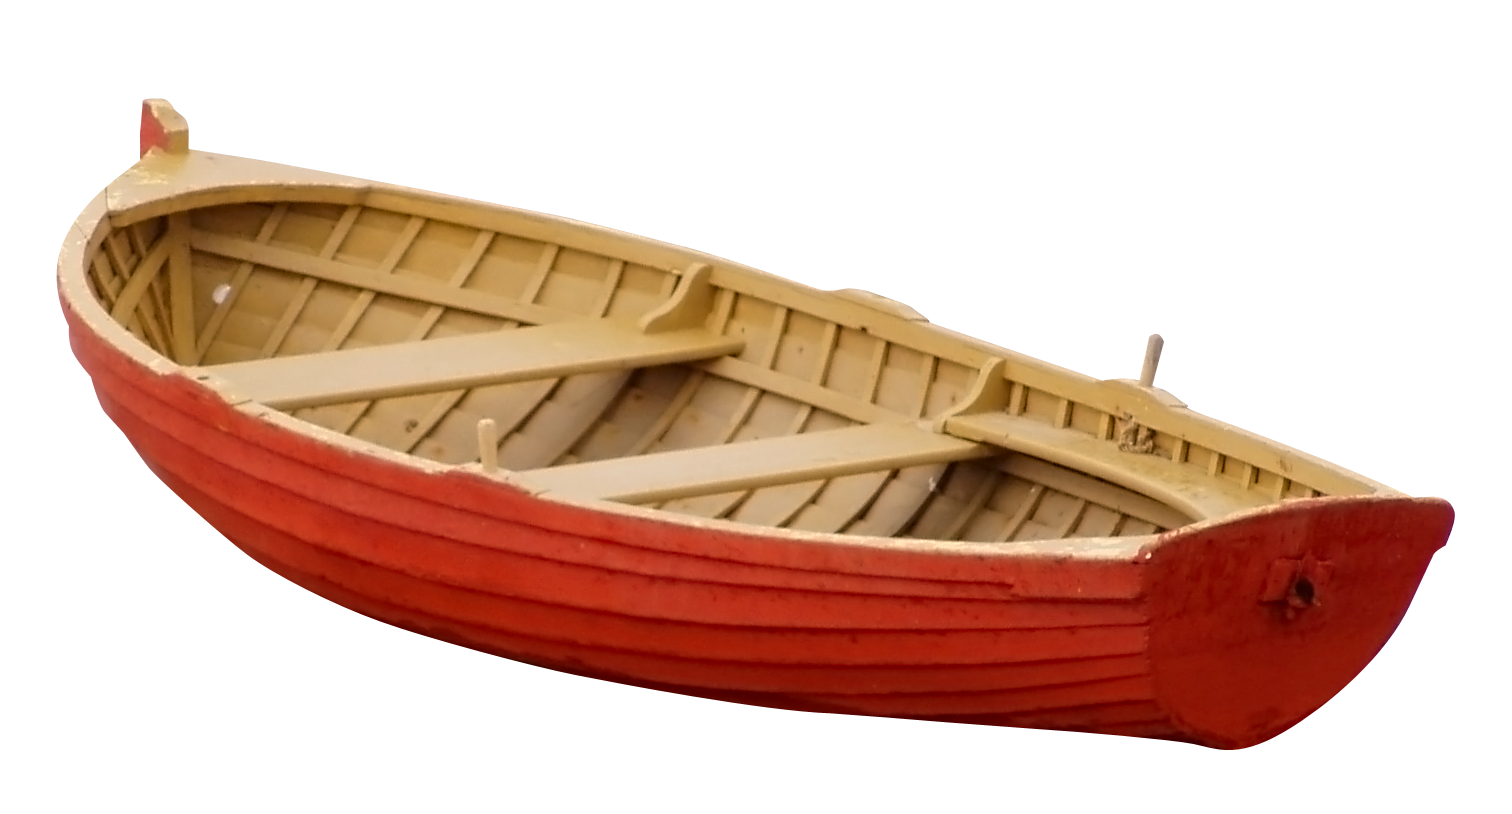 Boat png. Images free download